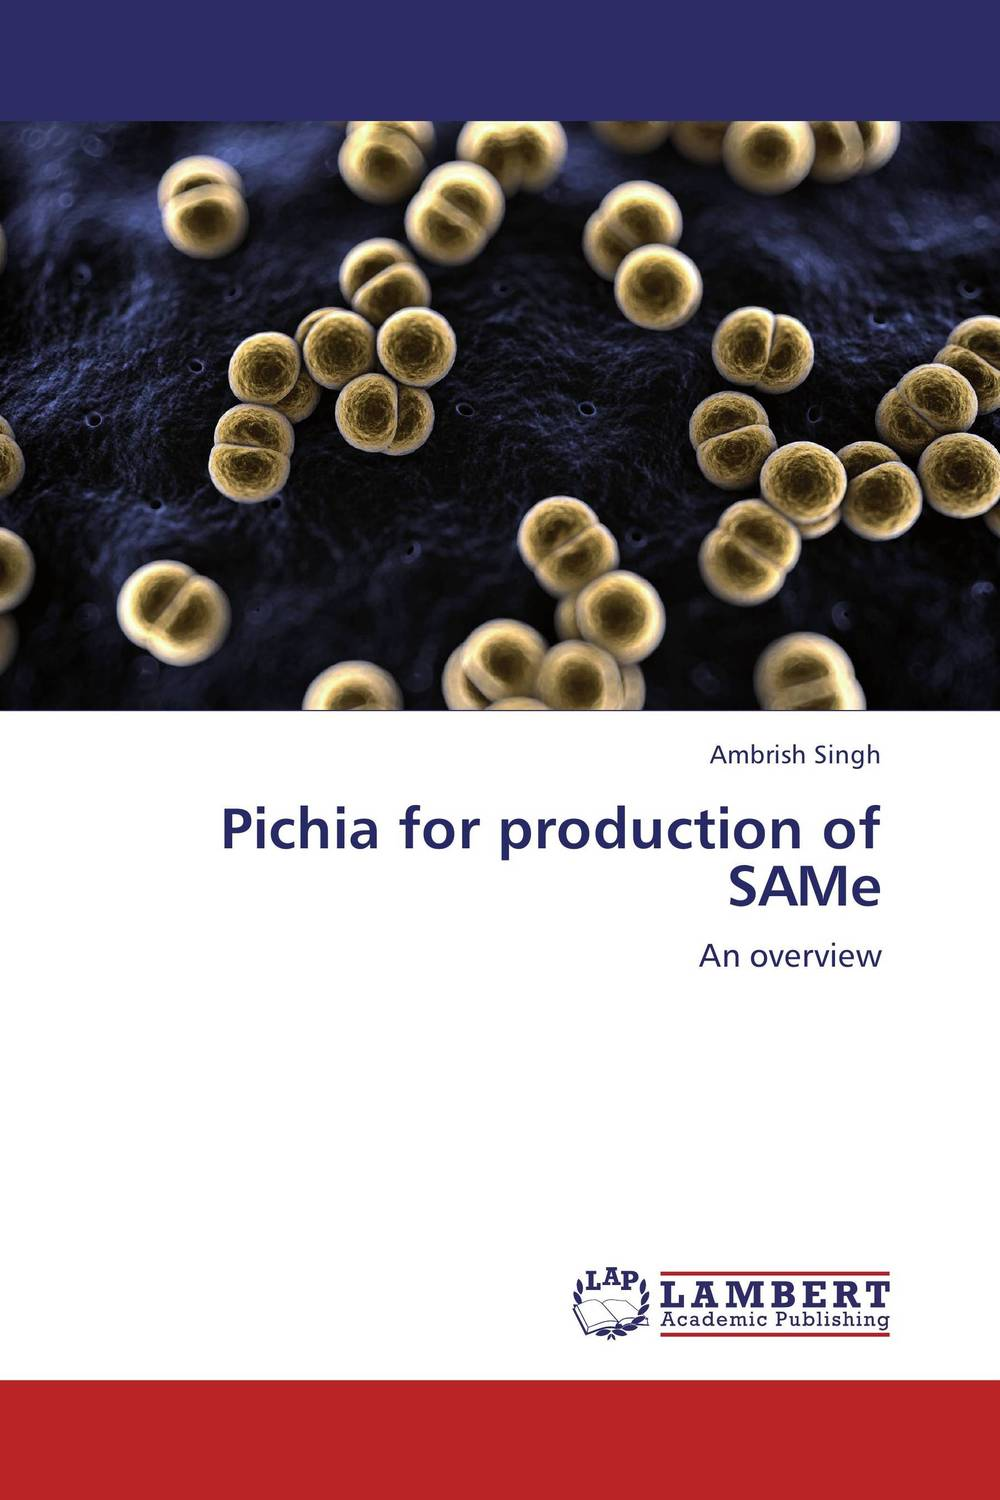 Pichia for production of SAMe alkaline protease production under solid state fermentation